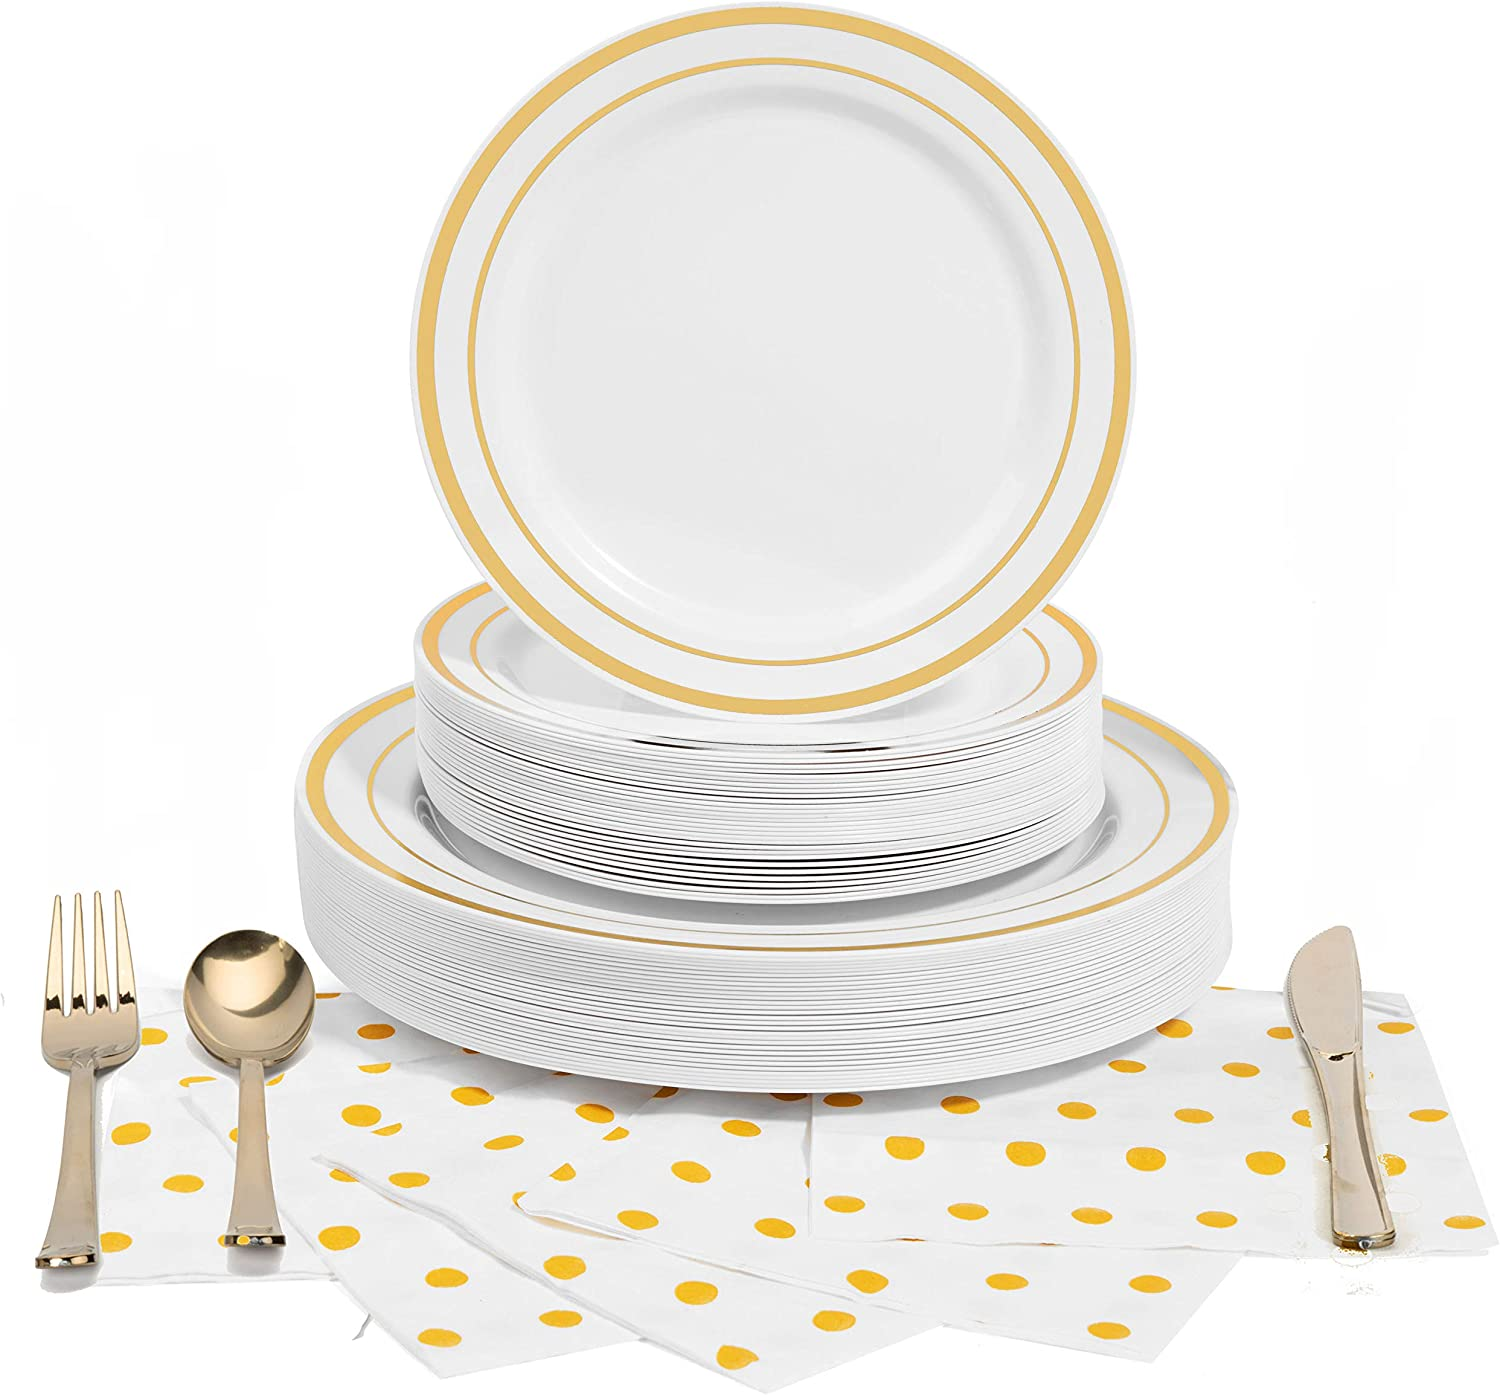 180 Pcs Serves 30, Gold Party Supplies Set | Reusable | No Flimsy Plates Or Weak Cutlery | Gold Trim Disposable Plastic Dinnerware | Includes Dinner Plates, Dessert Plates, Cutlery & 3-Ply Napkins